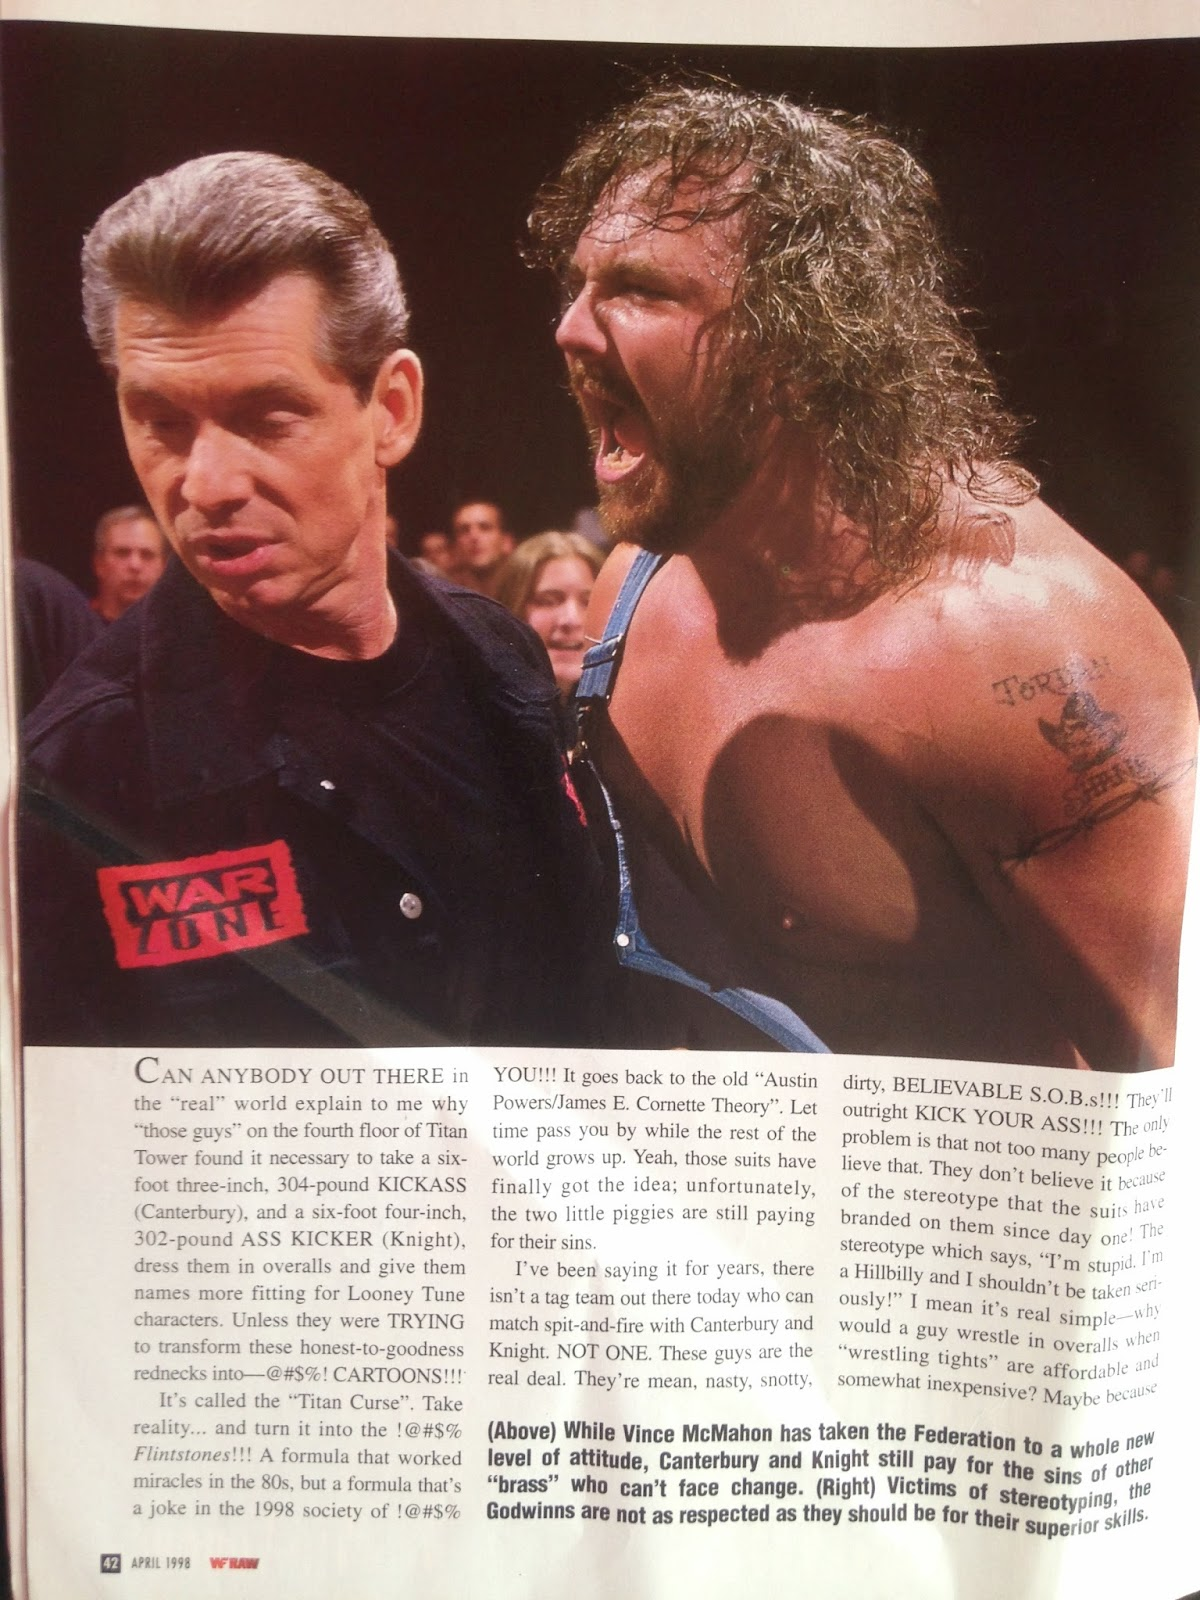 WWE - WWF Raw Magazine - April 1998 - Henry Godwin blasts Vince McMahon